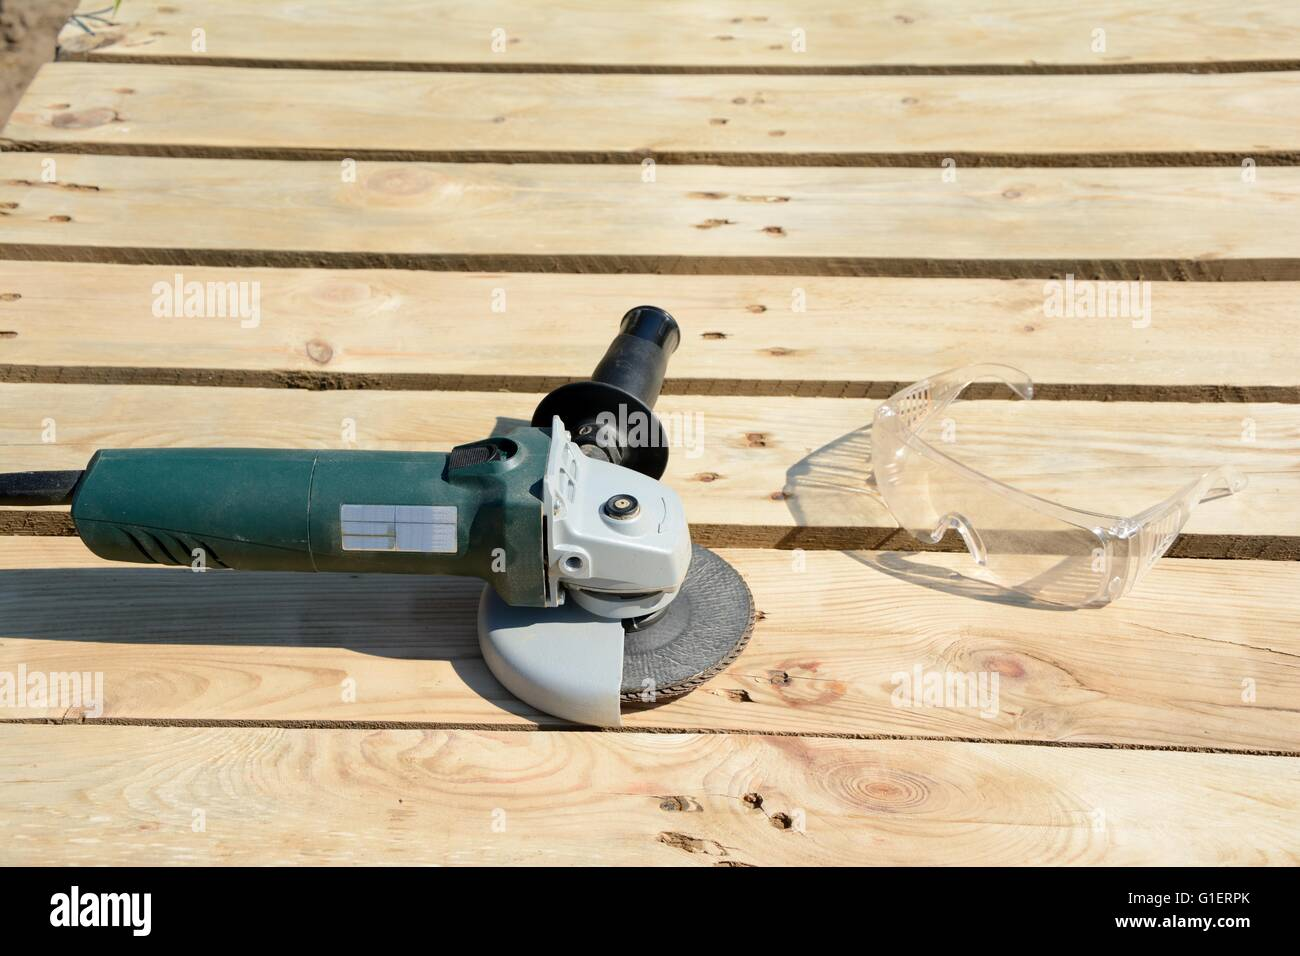 Angle grinder with abrasive disc and protective glasses on planks after work. - Stock Image